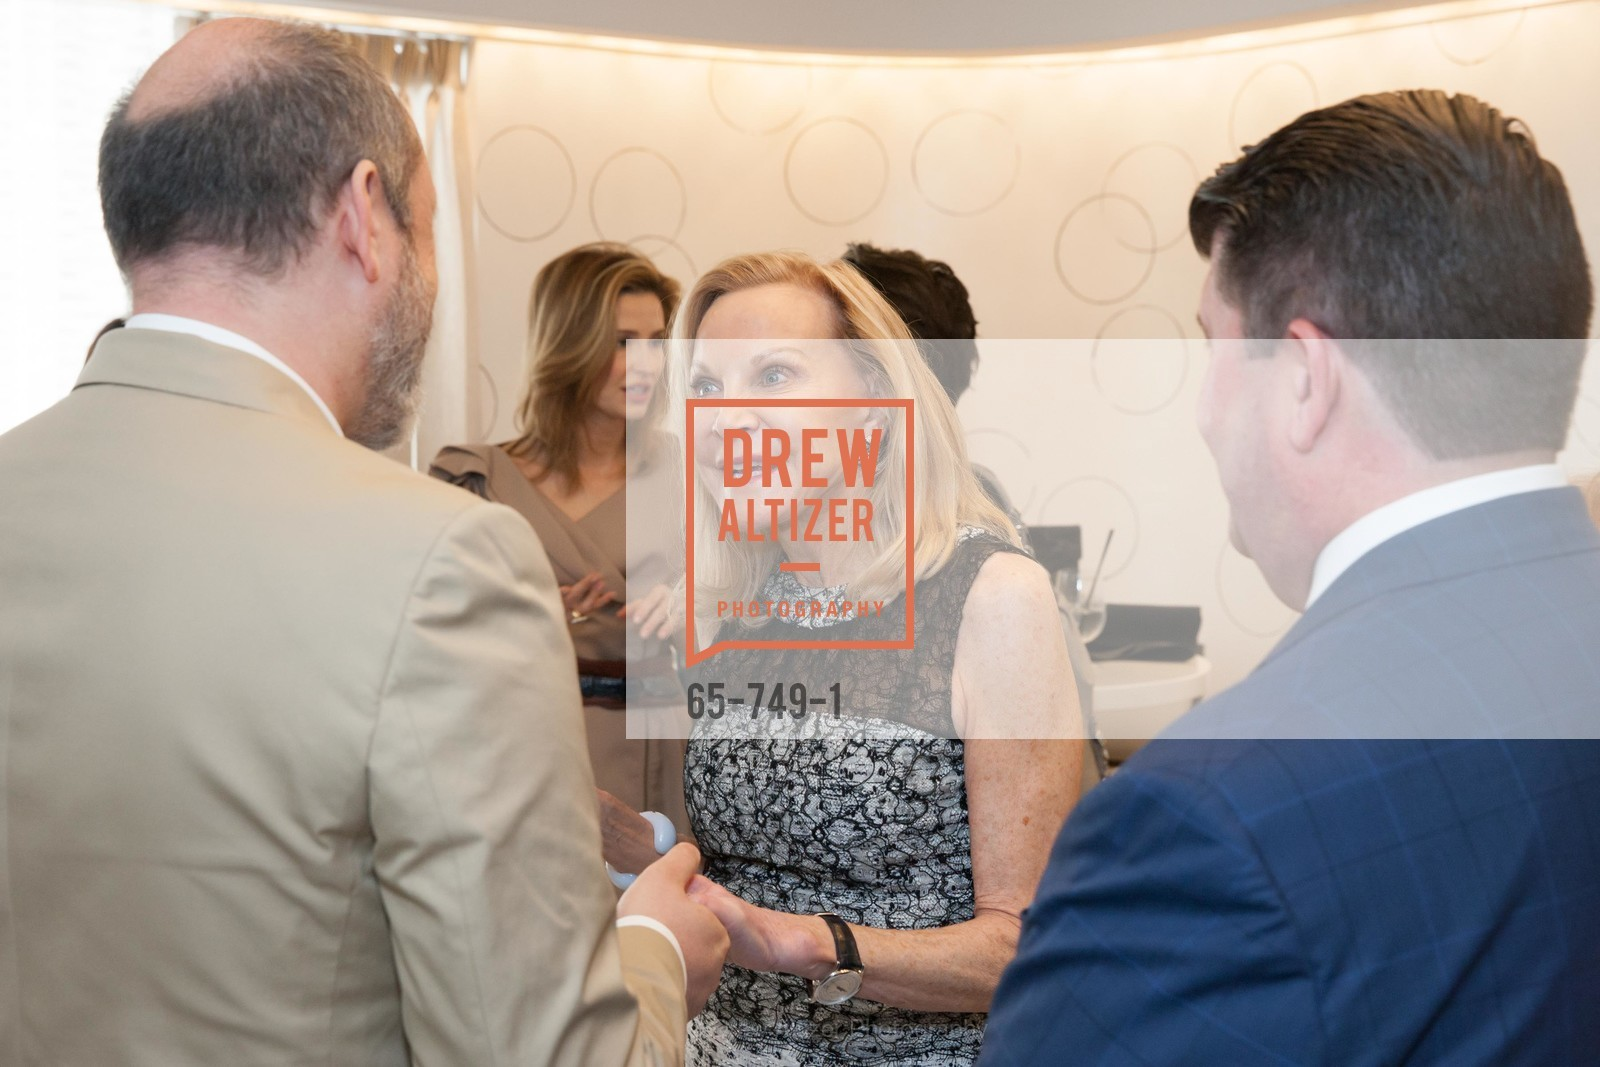 Carole McNeil, PETER COPPING Meets and Greets OSCAR DELA RENTA Clients and Associates at NEIMAN MARCUS, US, May 23rd, 2015,Drew Altizer, Drew Altizer Photography, full-service agency, private events, San Francisco photographer, photographer california